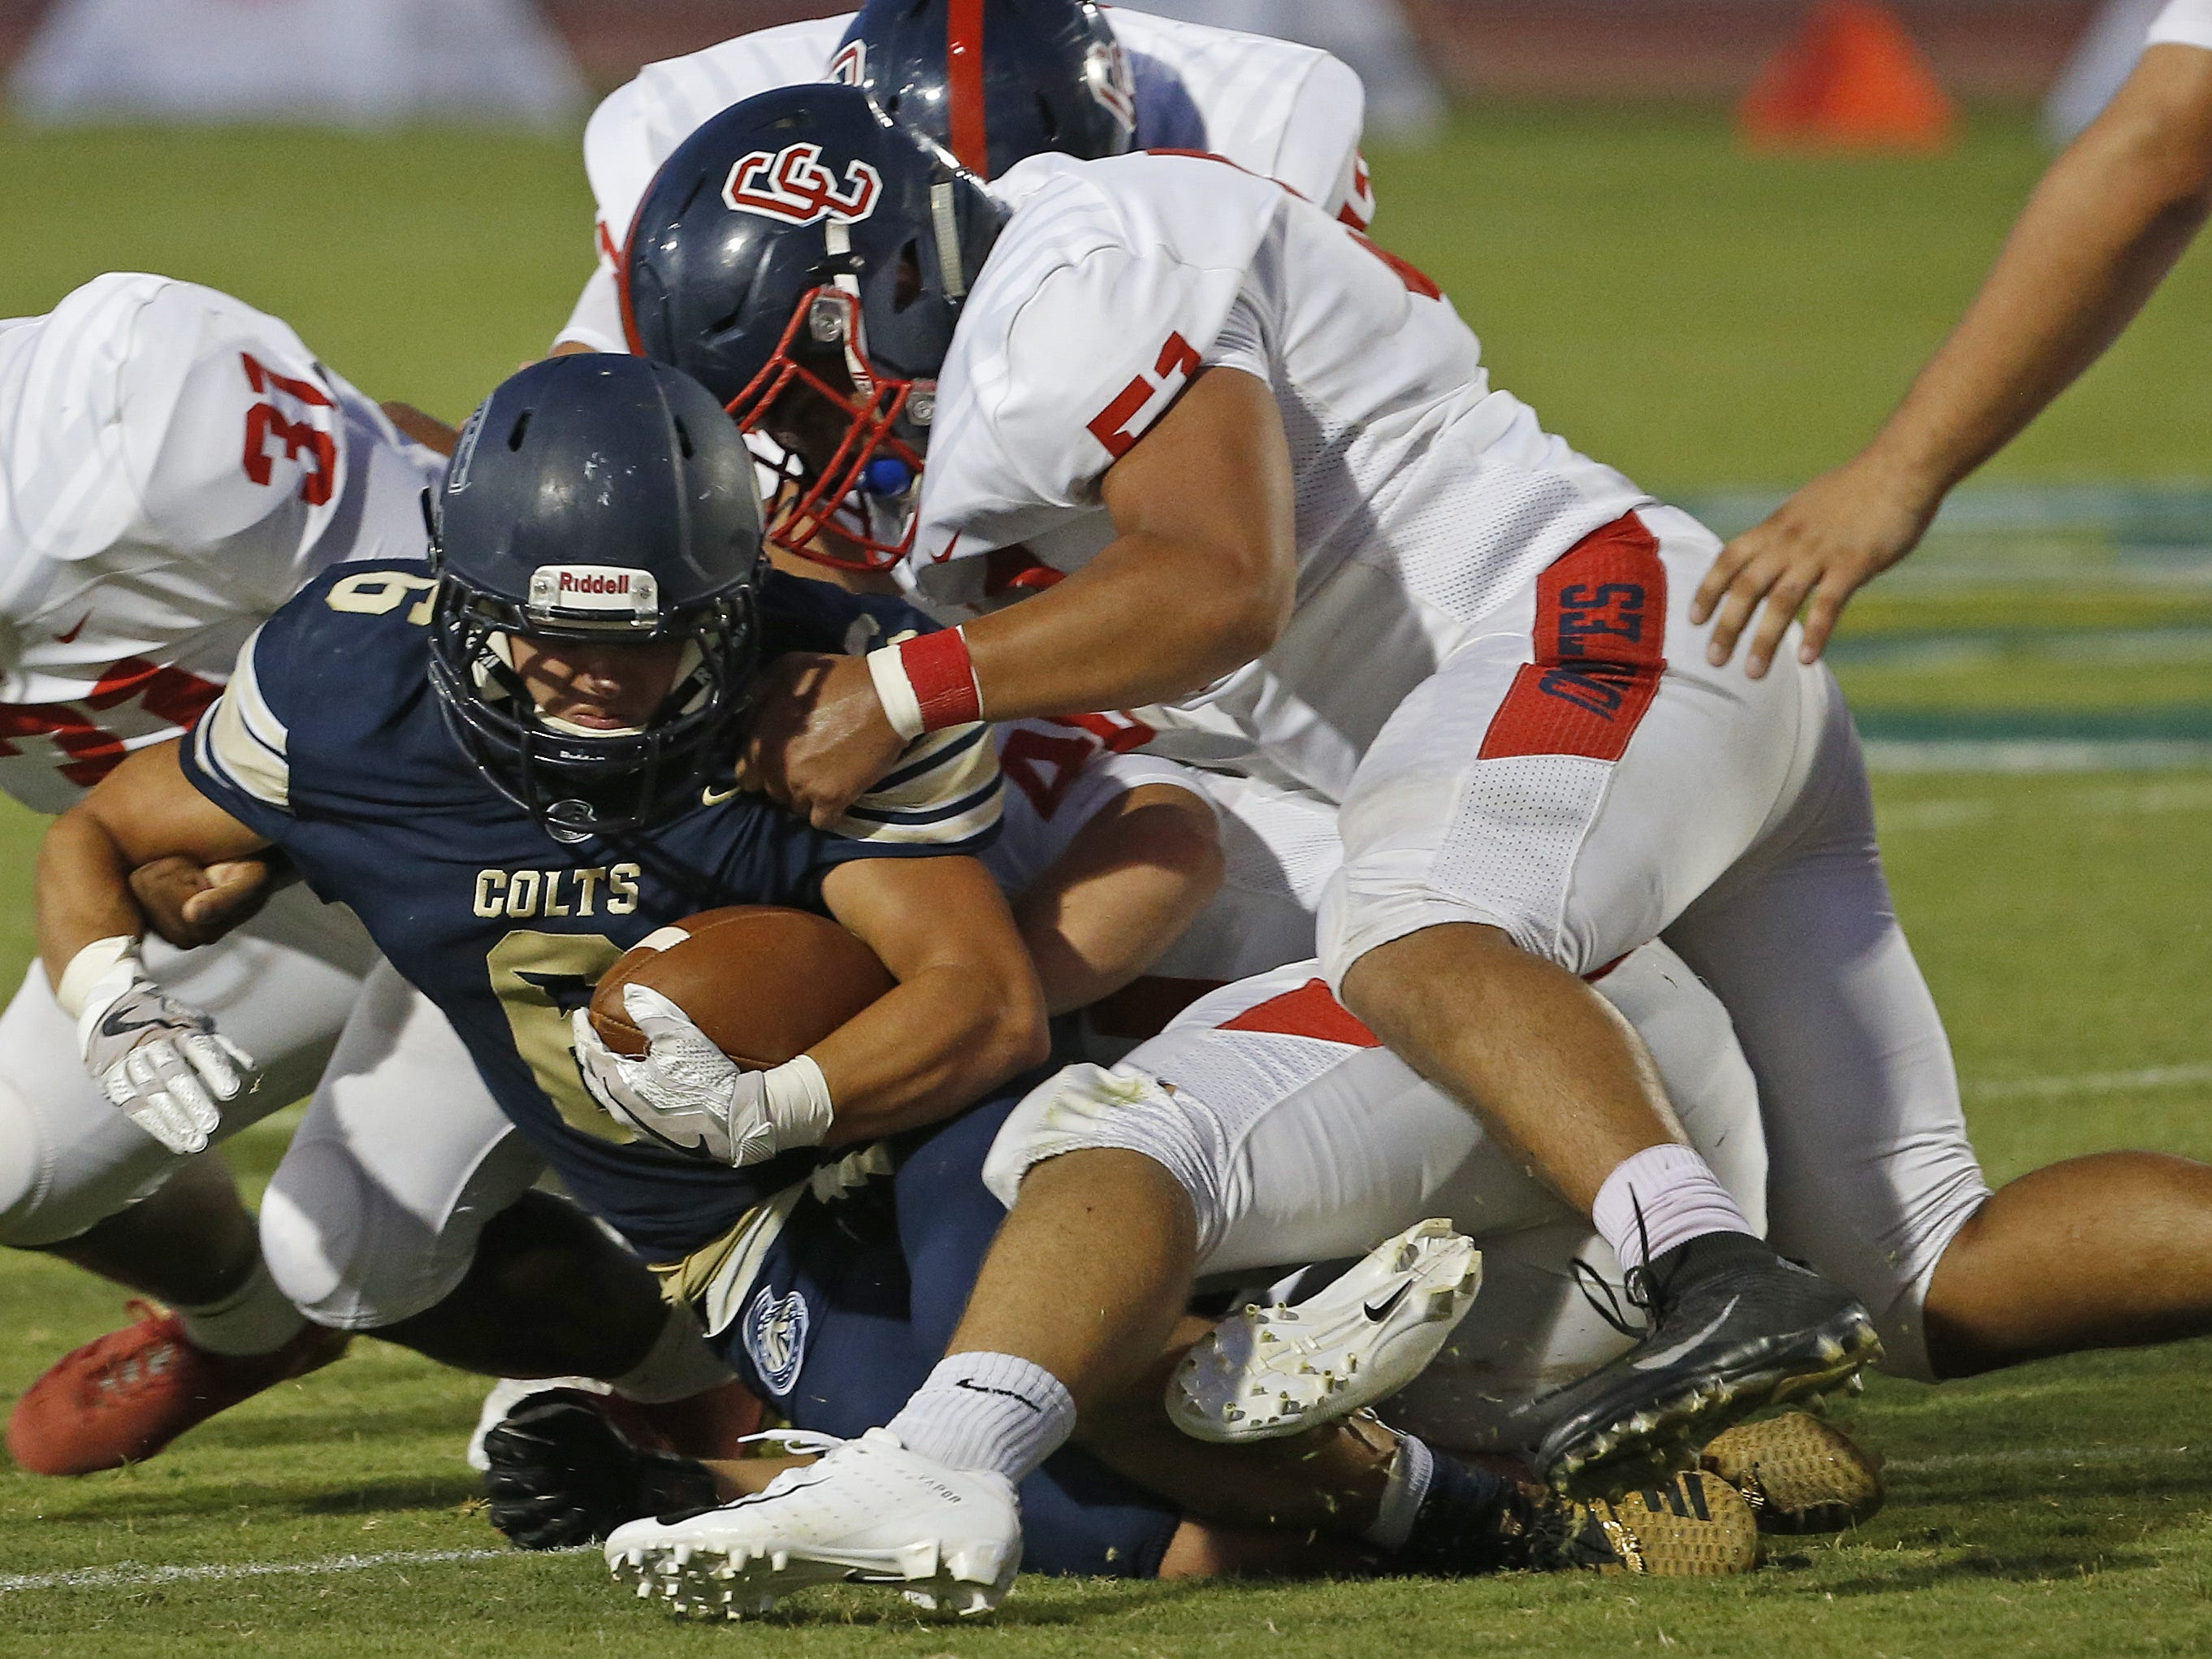 Centennial's Xavier Garcia (51) tackles Casteel's Mack Johnson (6) during the first half at Casteel High School in Queen Creek, Ariz. on Aug. 17, 2018.